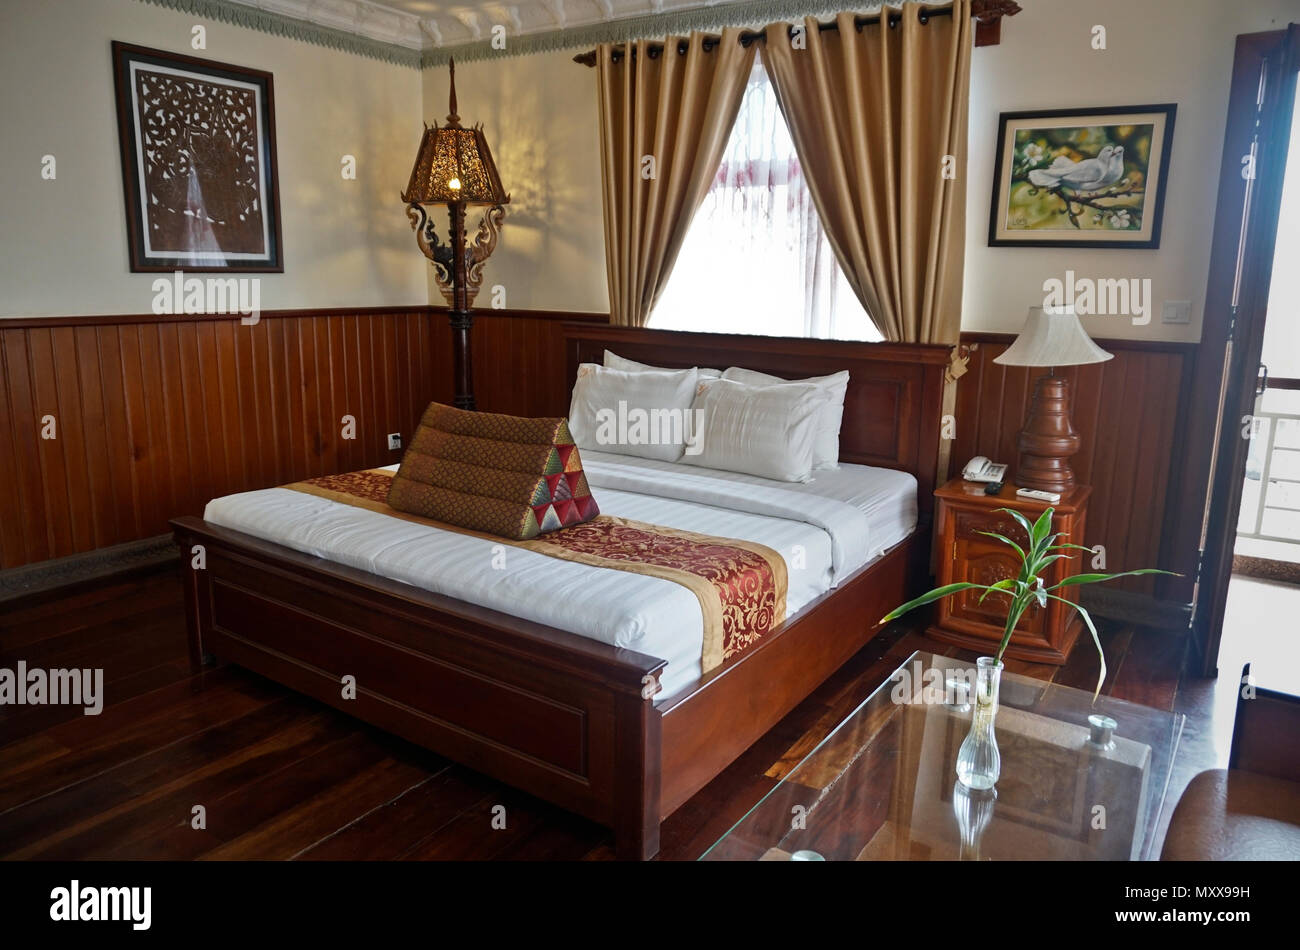 Hotel or bedroom with asian decor Stock Photo: 188662813 - Alamy